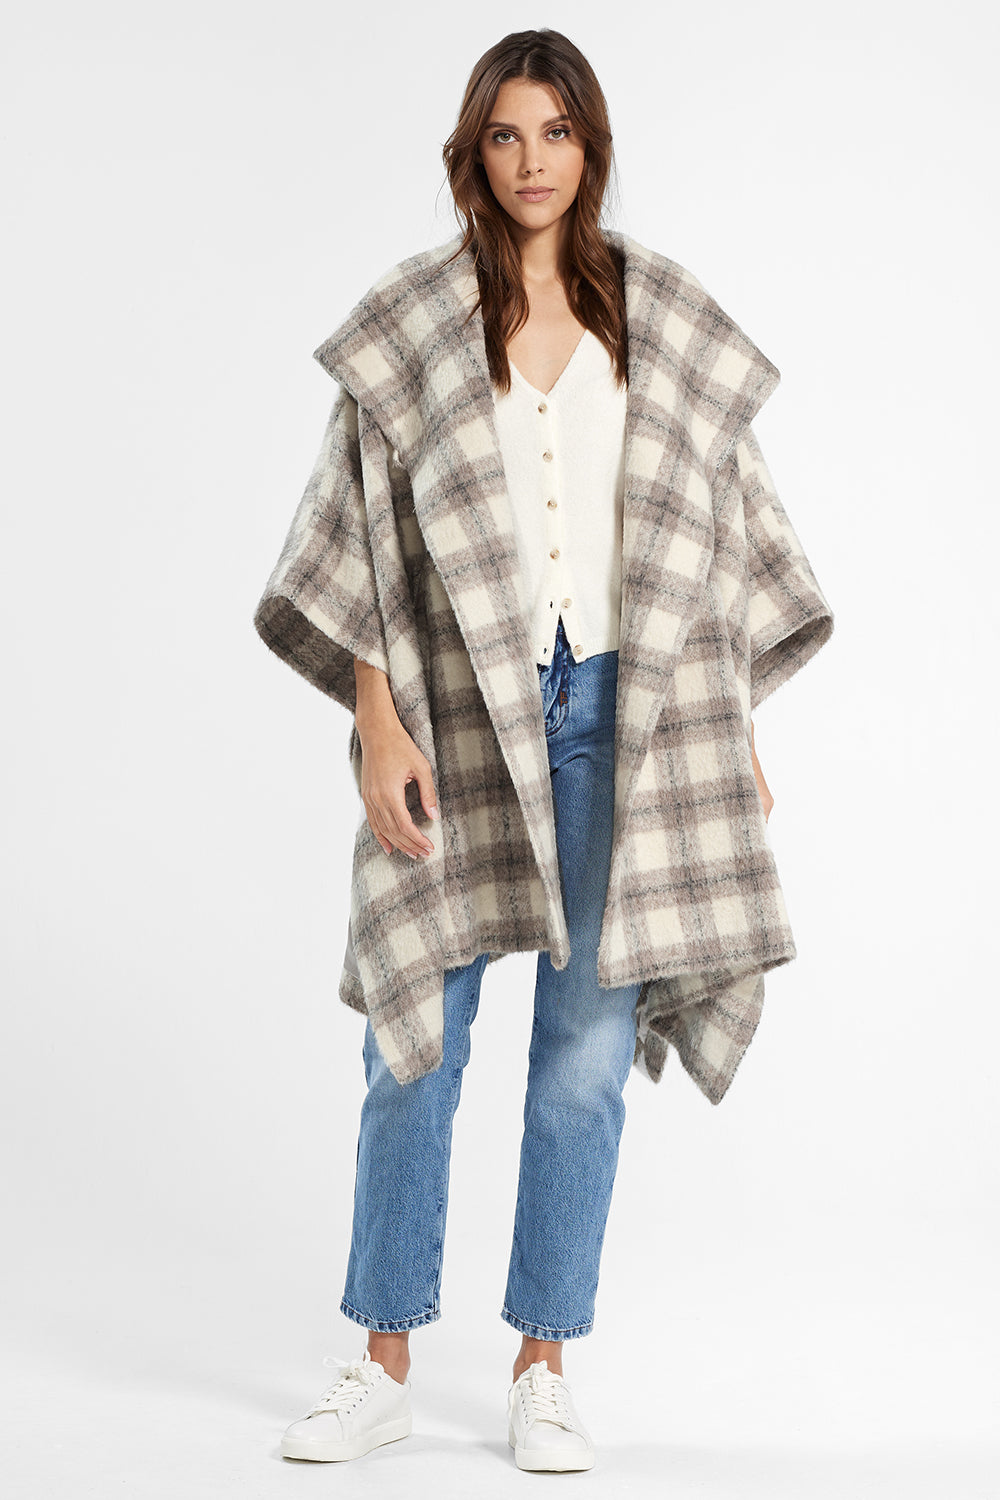 Sentaler Plaid Oversized Hooded Poncho with Belt featured in Suri Alpaca and available in Ecru Plaid. Seen open.